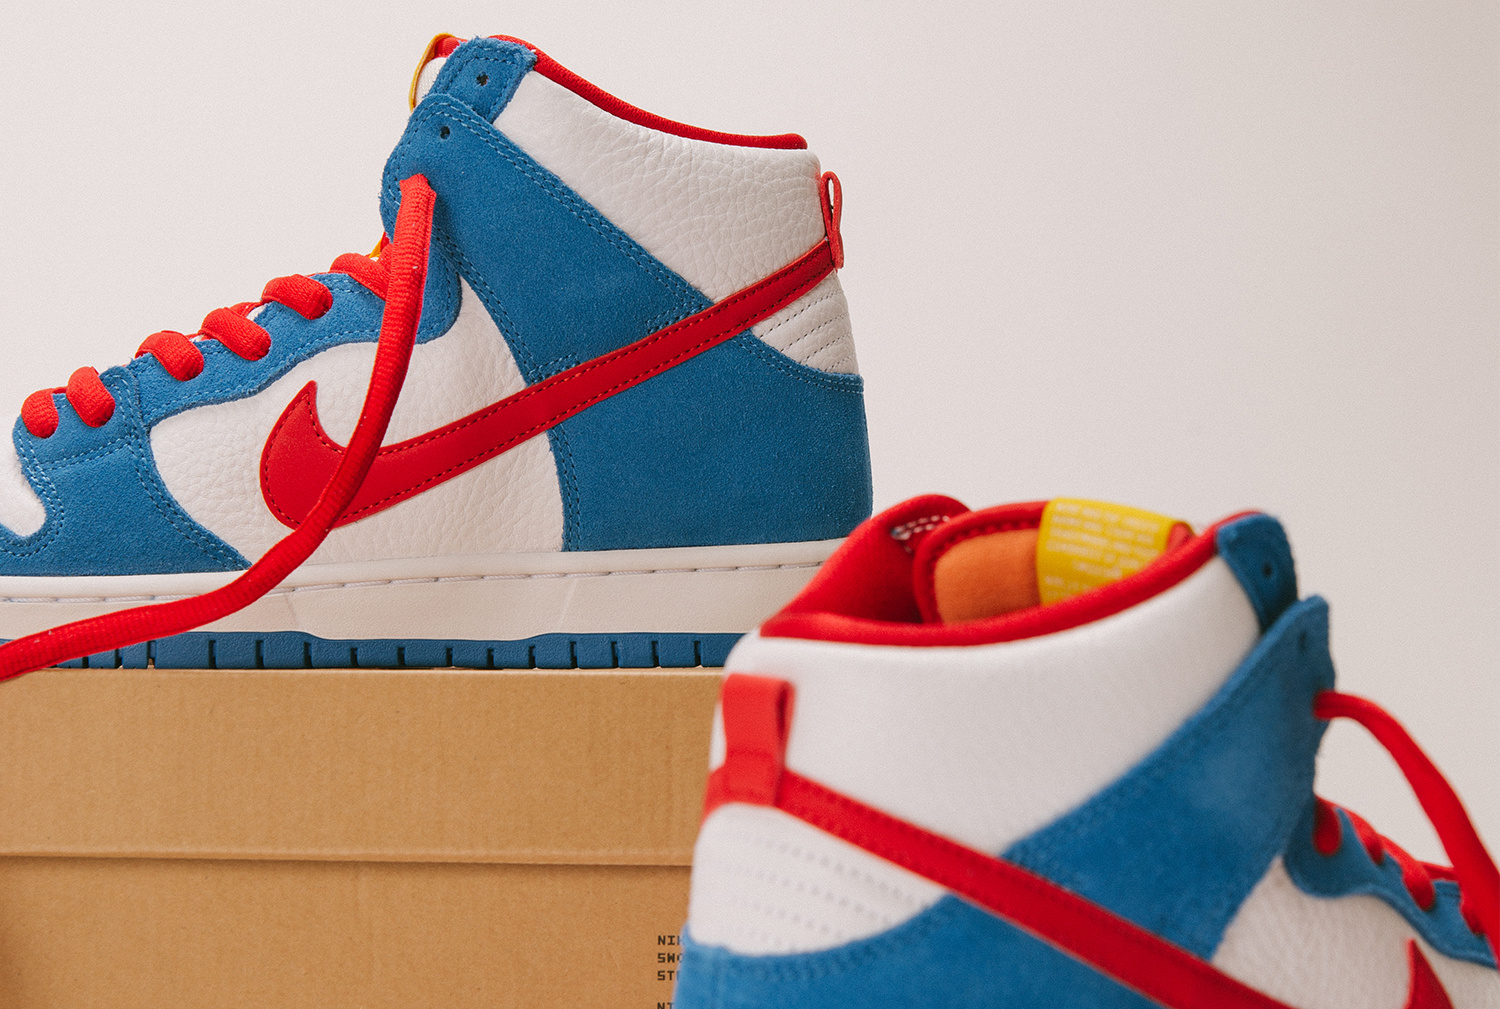 05.09.2020 - The Nike SB Dunk High Pro Iso 'Photo Blue'